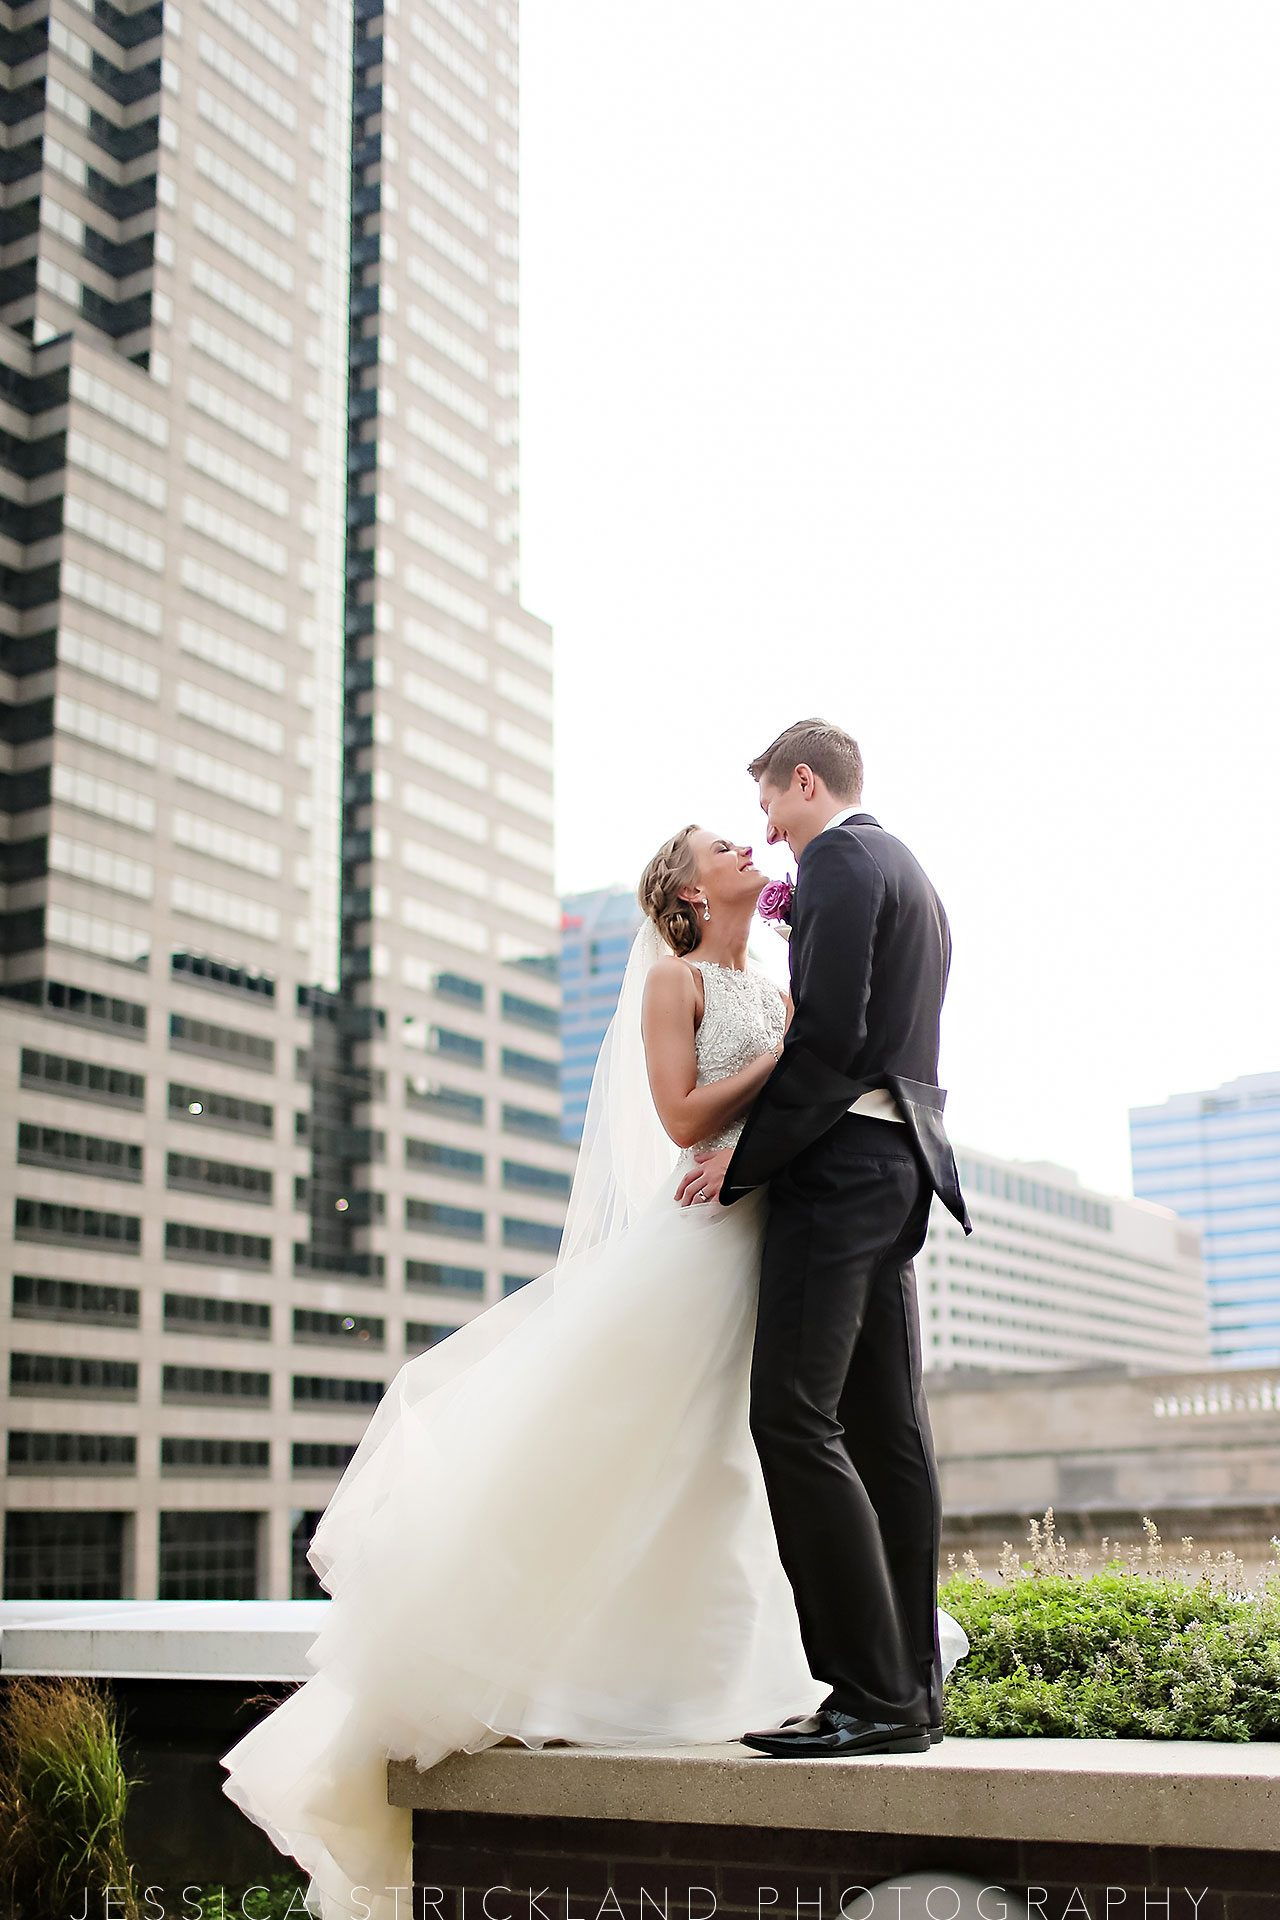 Serra Alex Regions Tower Indianapolis Wedding 249 watermarked